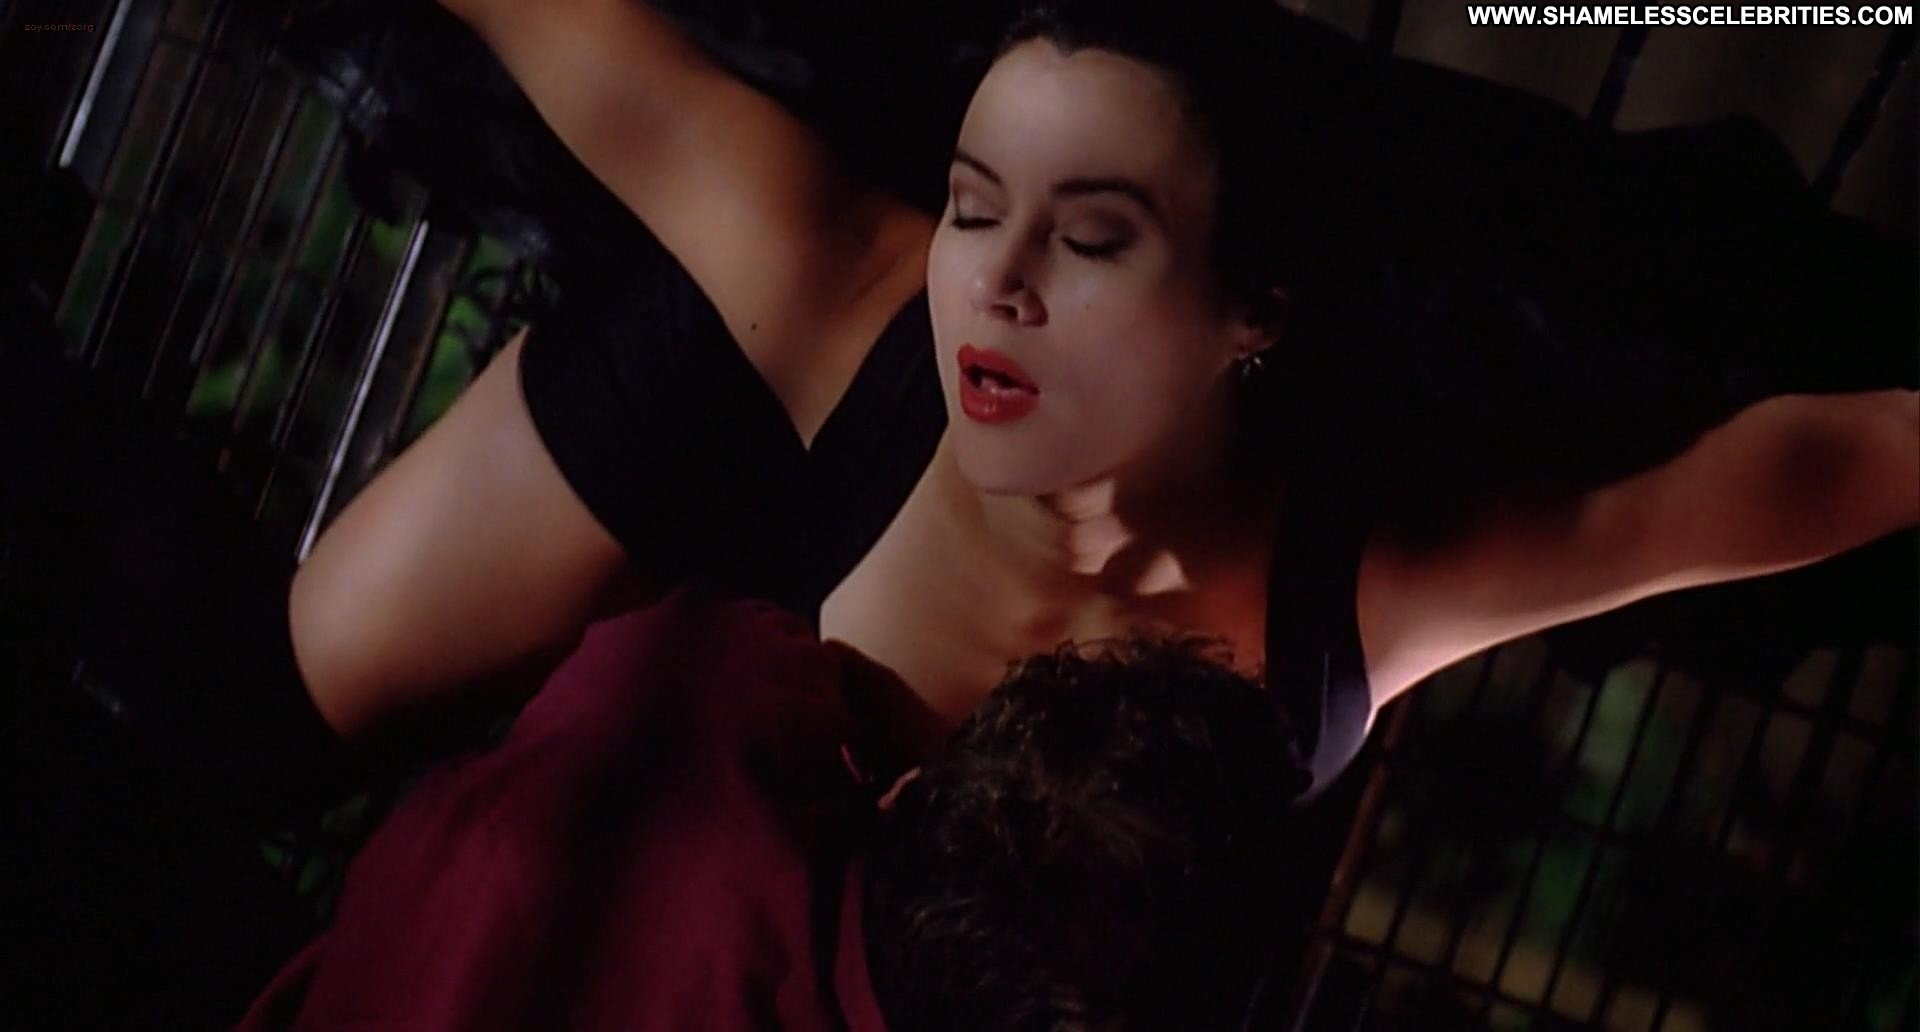 Agree, this alyssa milano embrace vampire remarkable